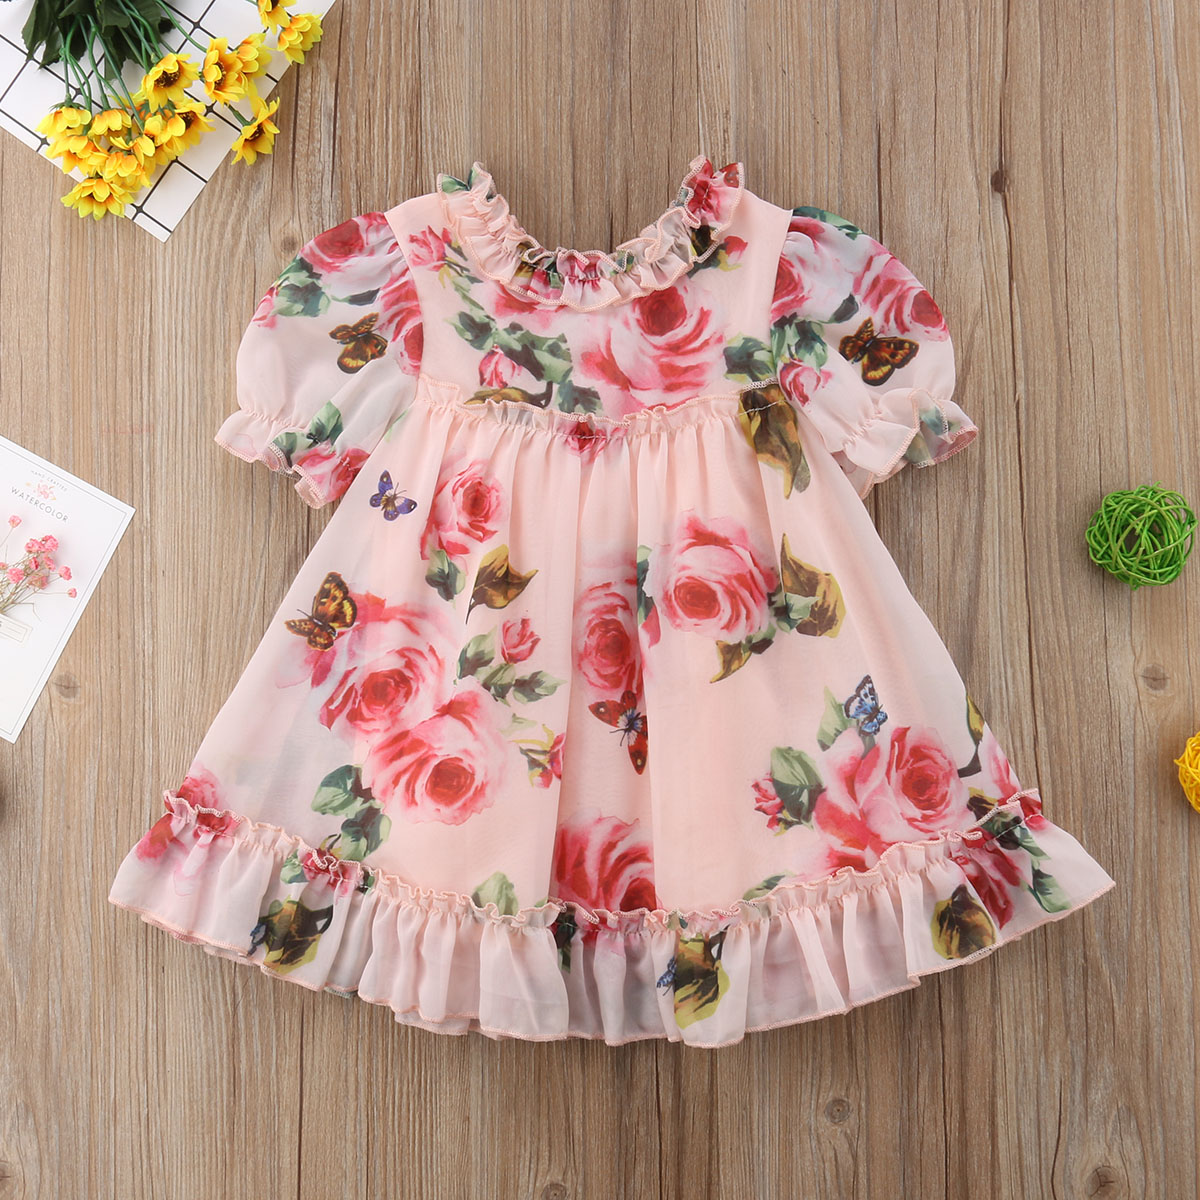 Pudcoco Cute Baby Girls Dress Flower Puff Sleeves A -line Dress For Baby Girls Holiday Party Baby Girls Clothing